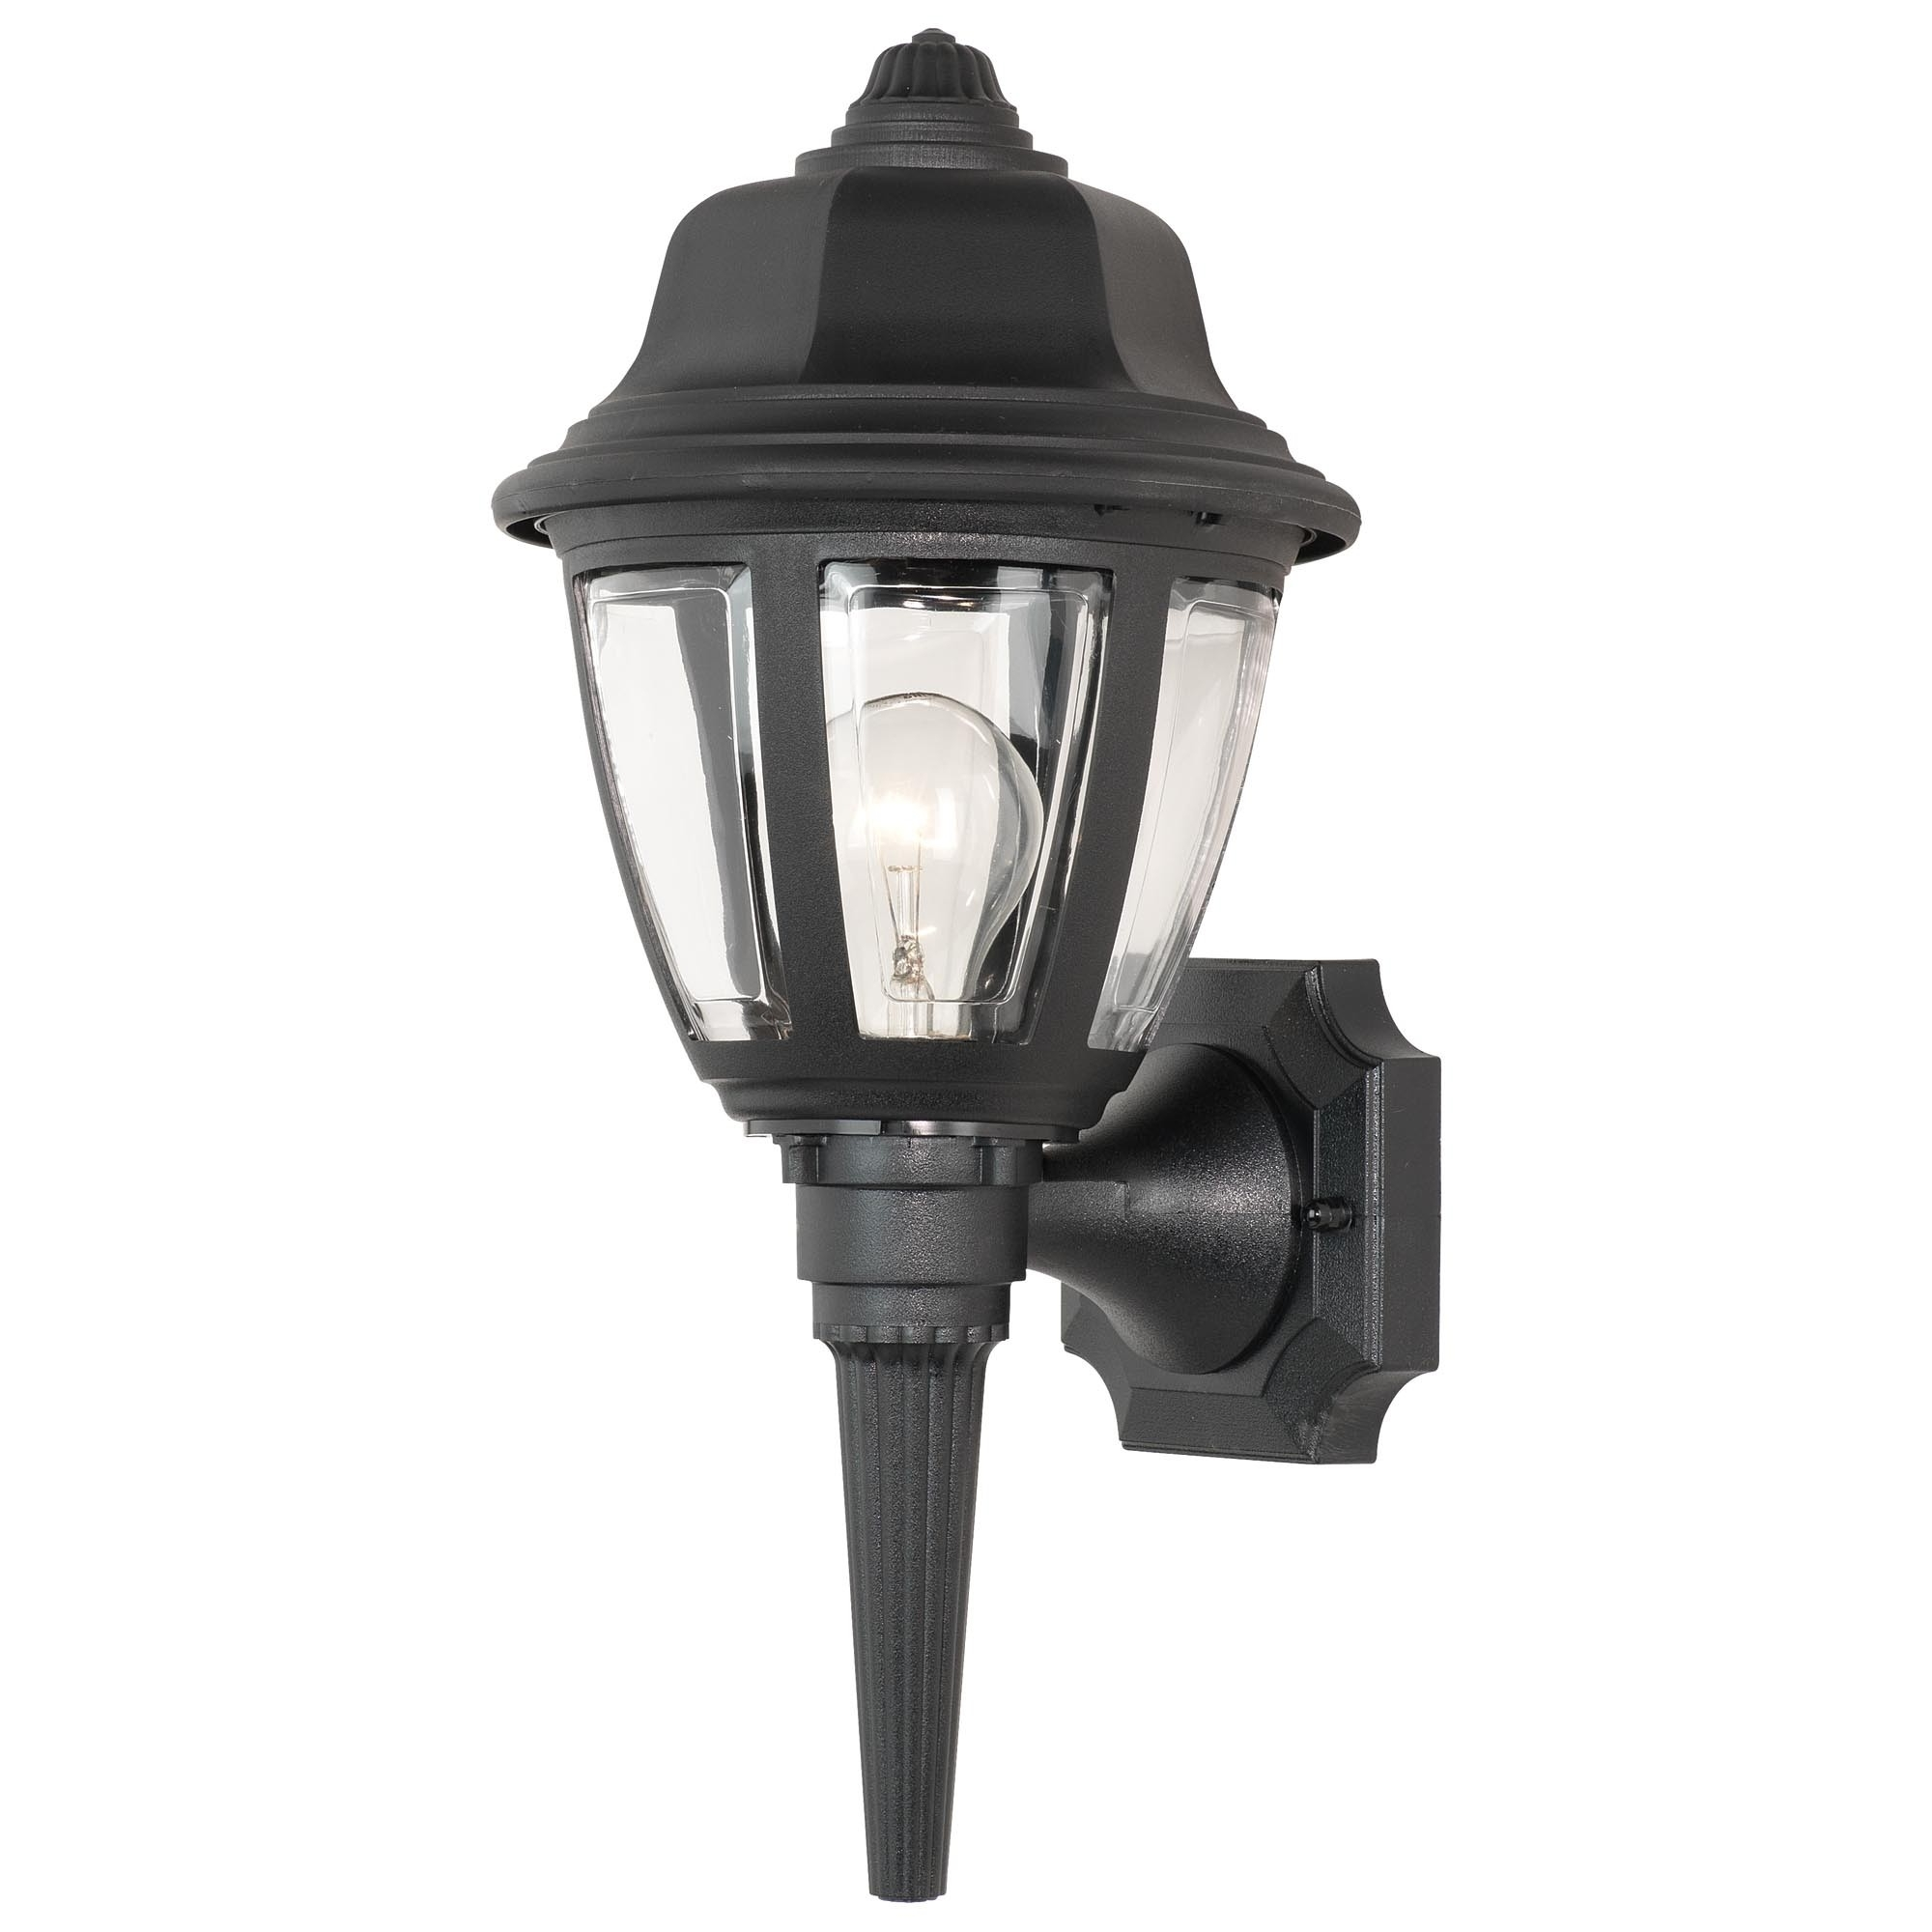 Outdoor Plastic Lanterns Pertaining To Well Known Plastic Lanterns Outdoor Lights Light Splendid Black Wall Lantern (View 2 of 20)